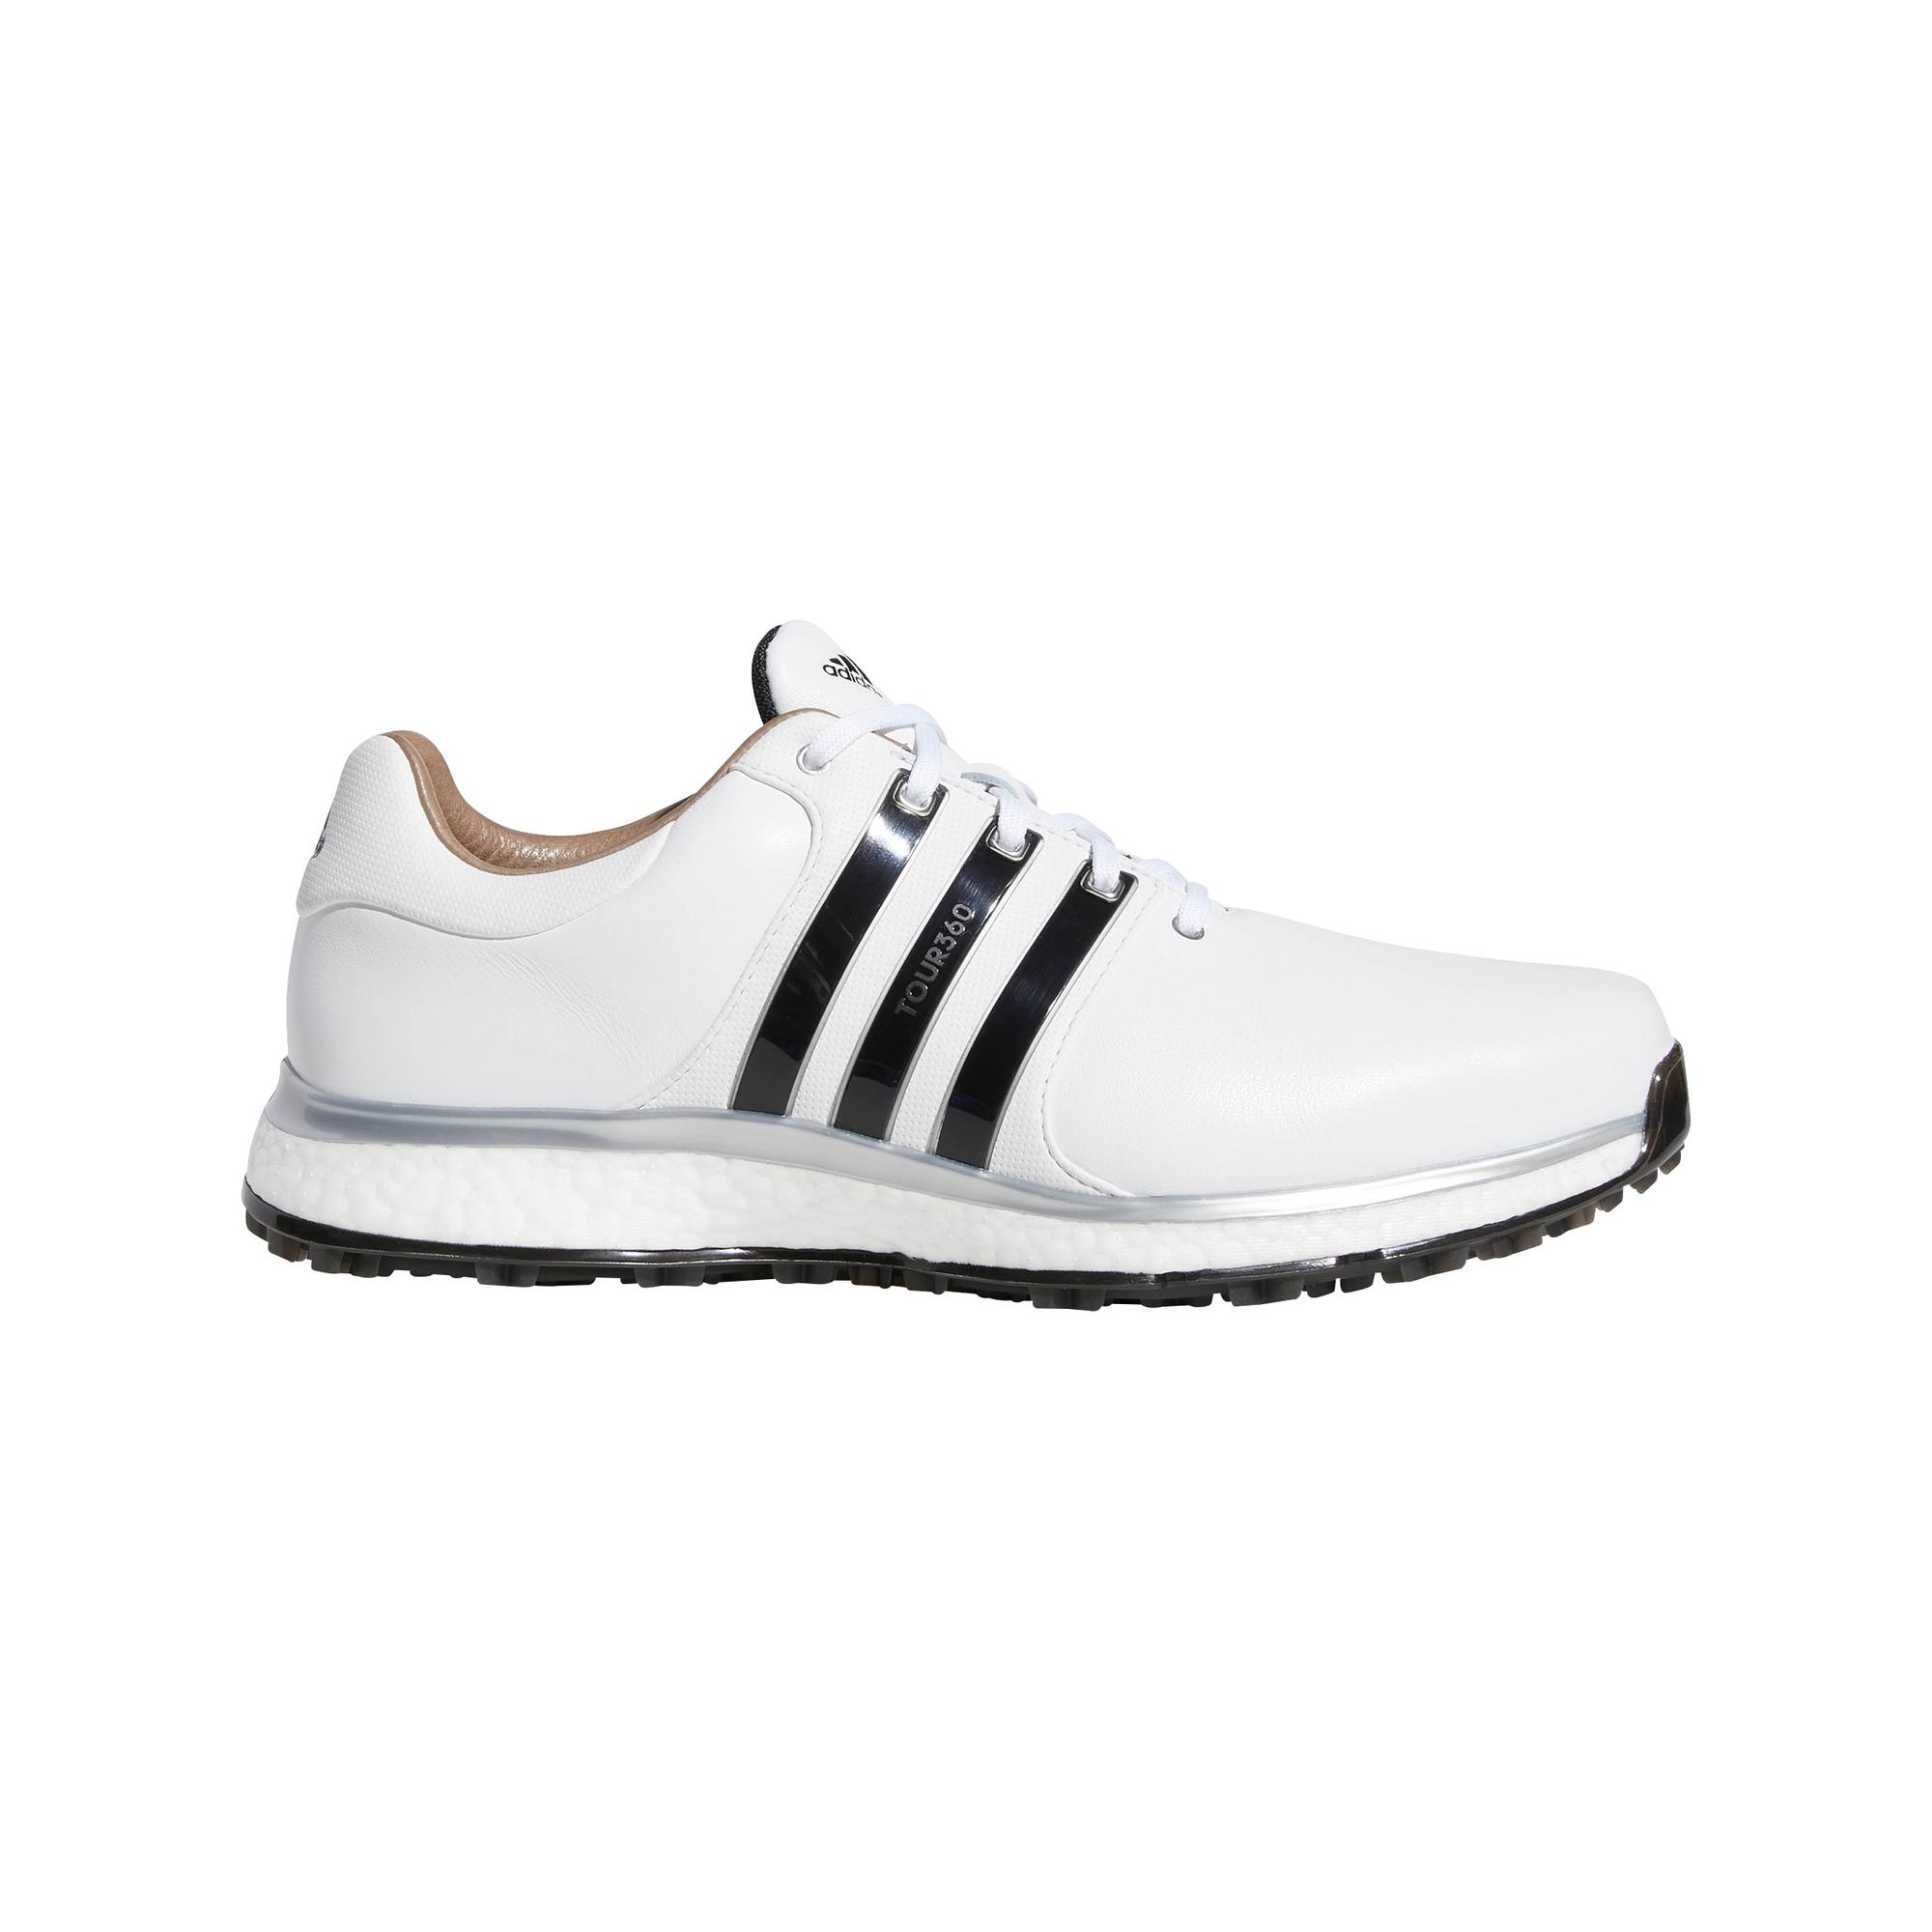 Men's Tour360 XT Spikeless Golf Shoe - WHITE/BLACK/SILVER